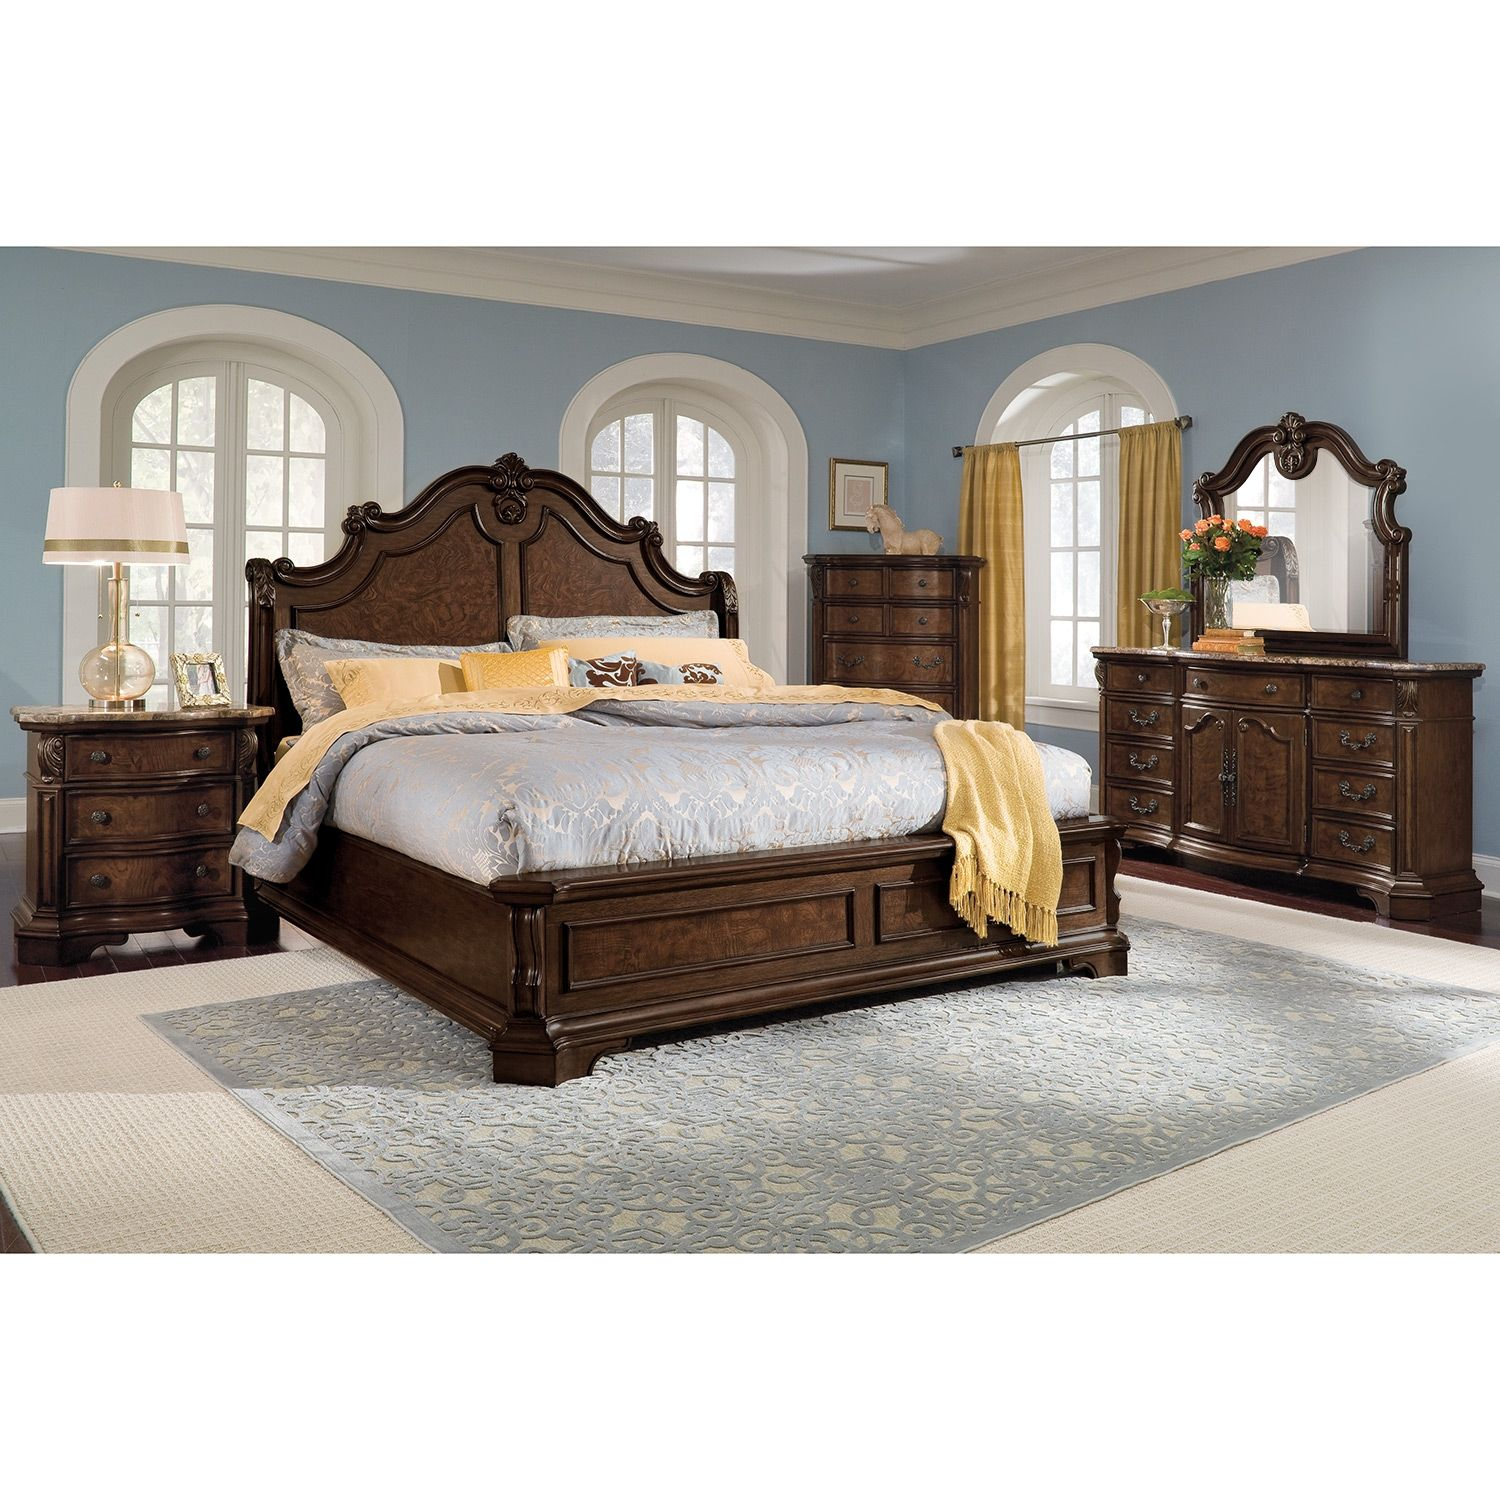 Dramatic Beautyimagine The Grandeur And Charm Of Yesteryear's Gorgeous Value City Furniture Bedroom Sets Decorating Design